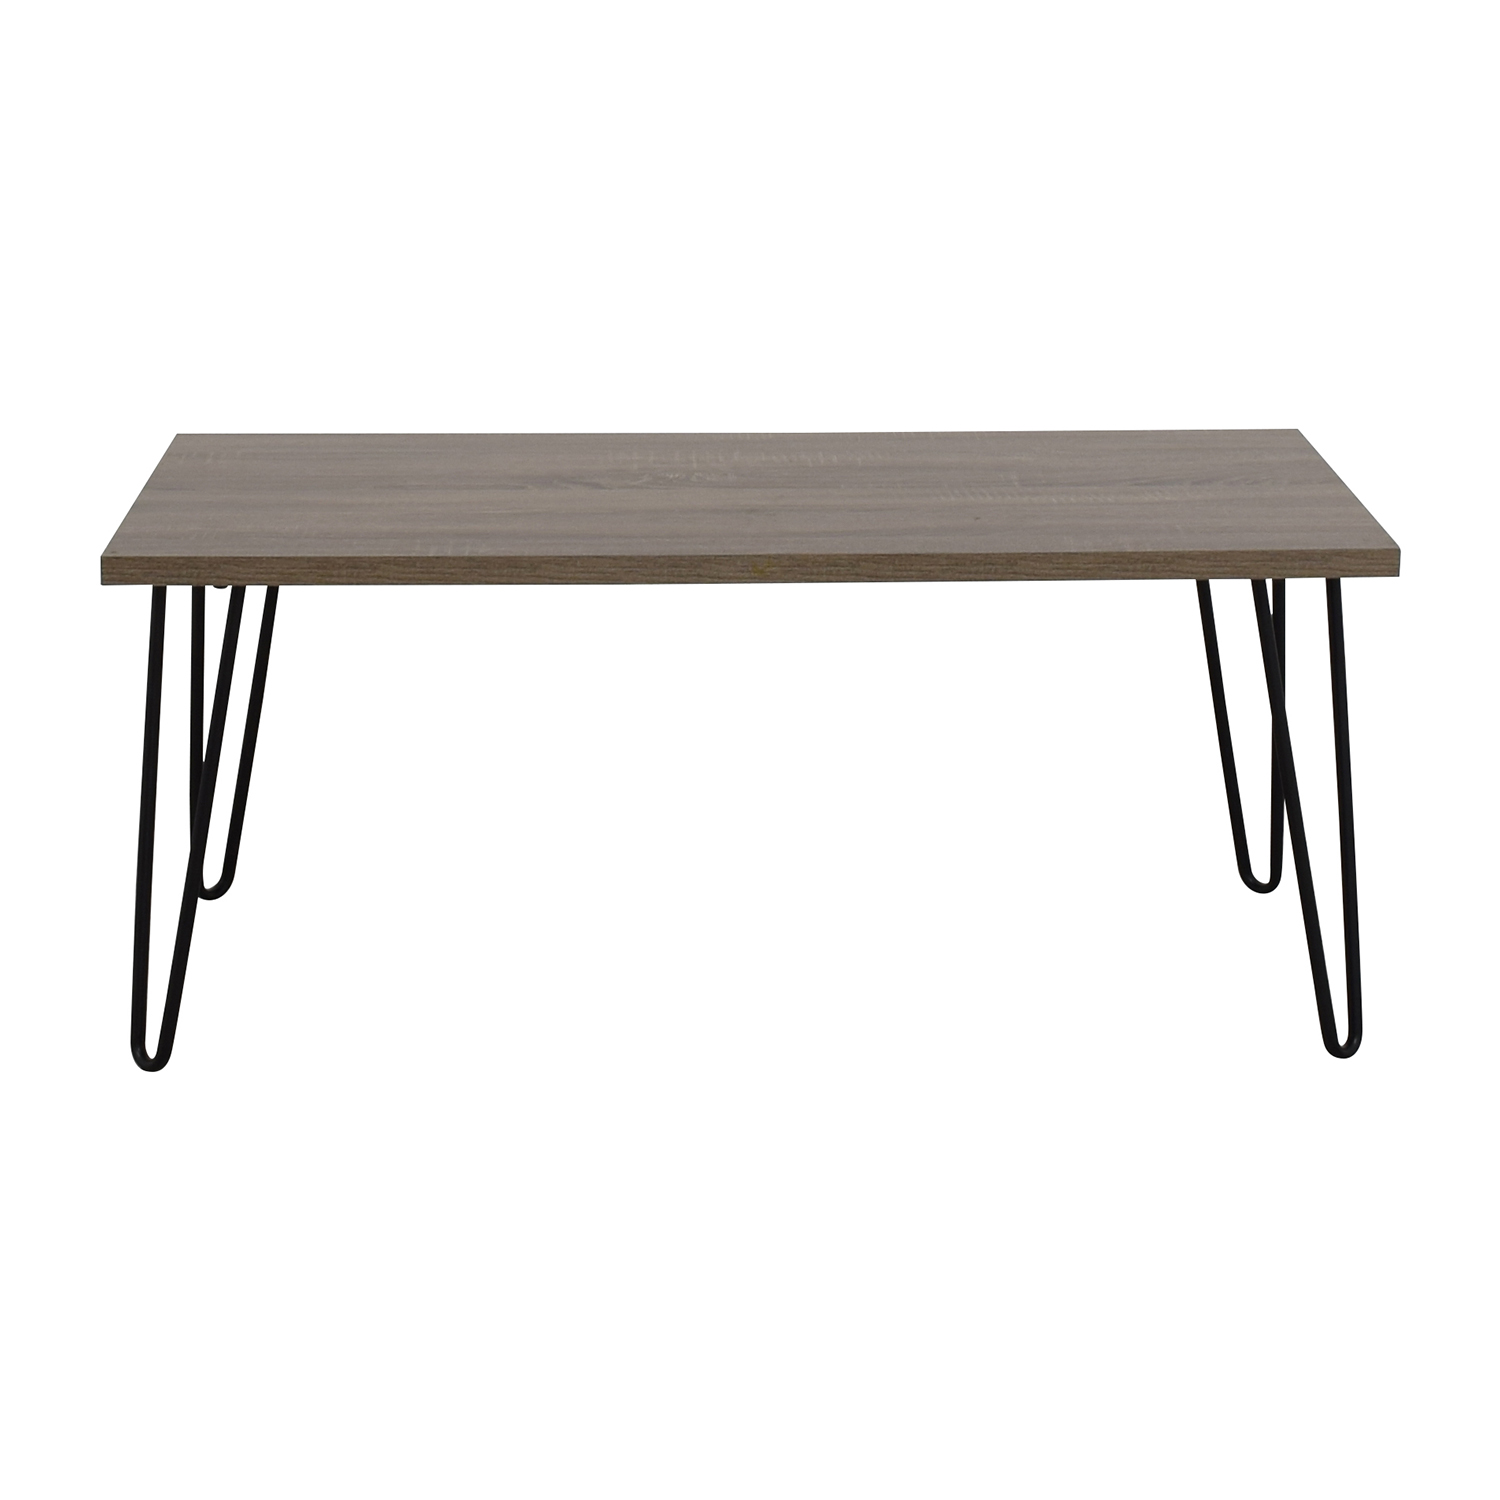 Altra Furniture Altra Furniture Owen Retro Coffee Table coupon